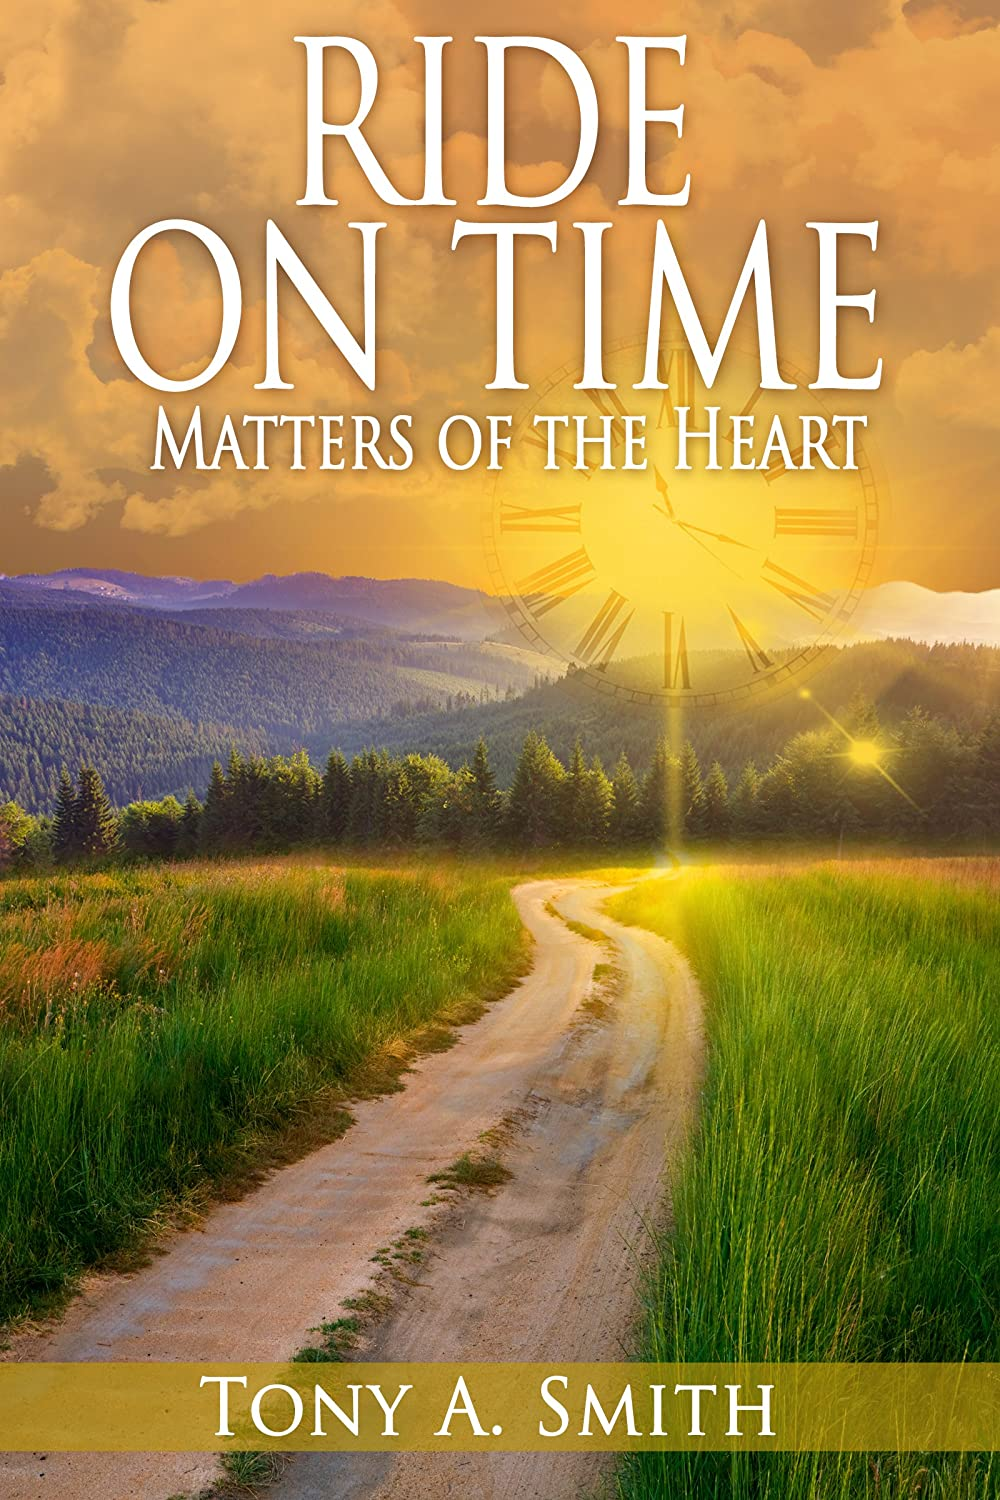 Ride on Time: Matters of the Heart by Tony Smith